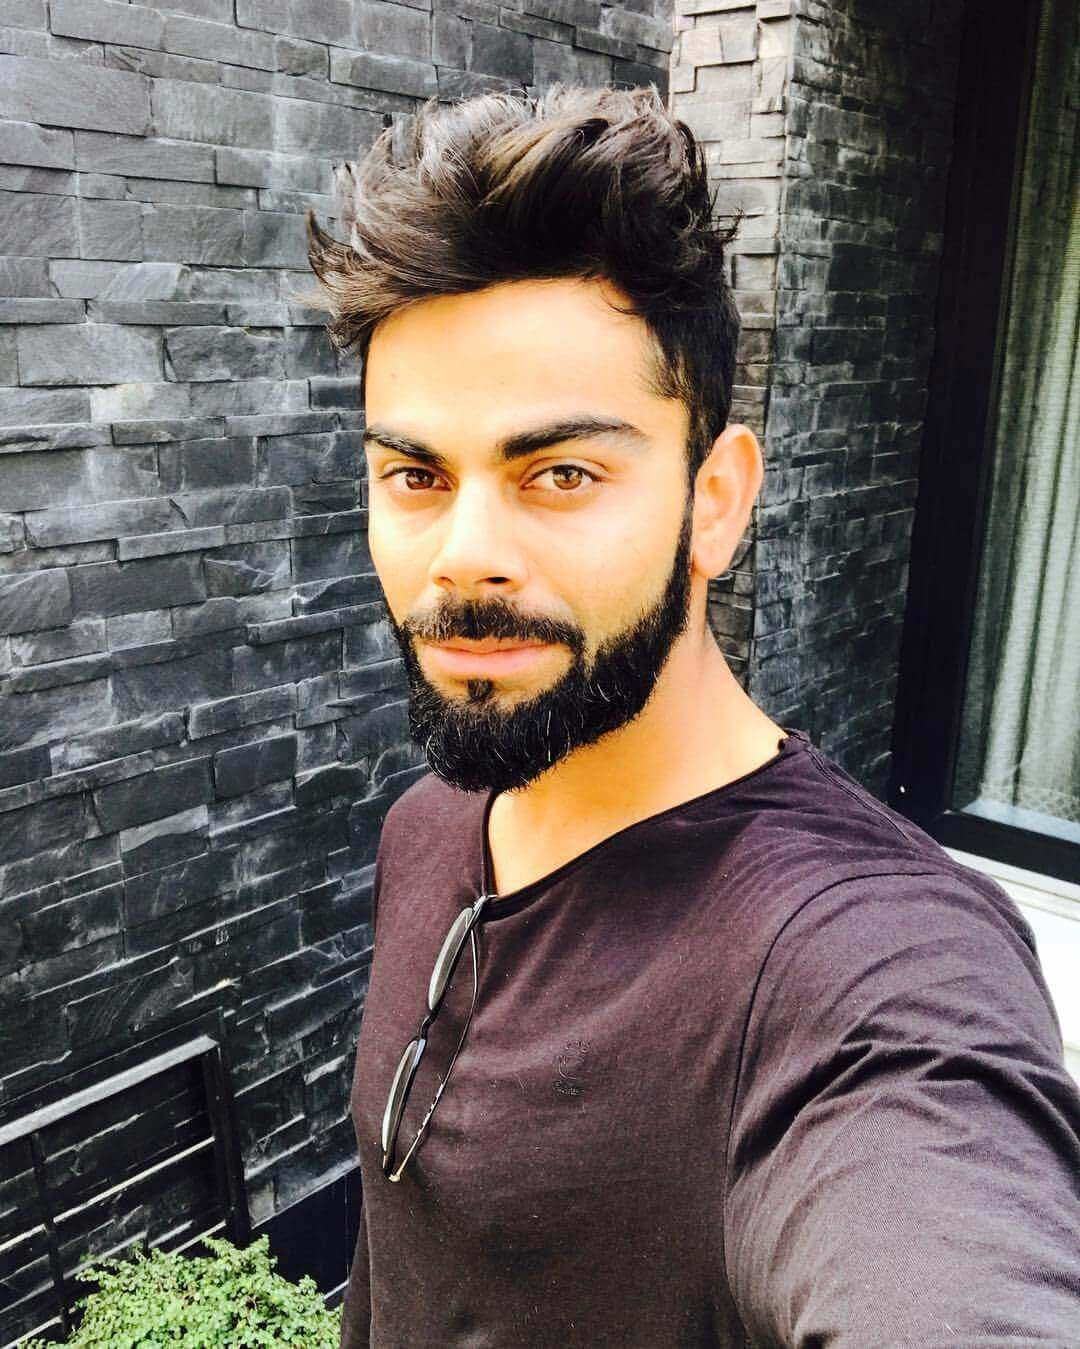 30 Virat Kohli Beard Styles With Photos For Men Live Enhanced